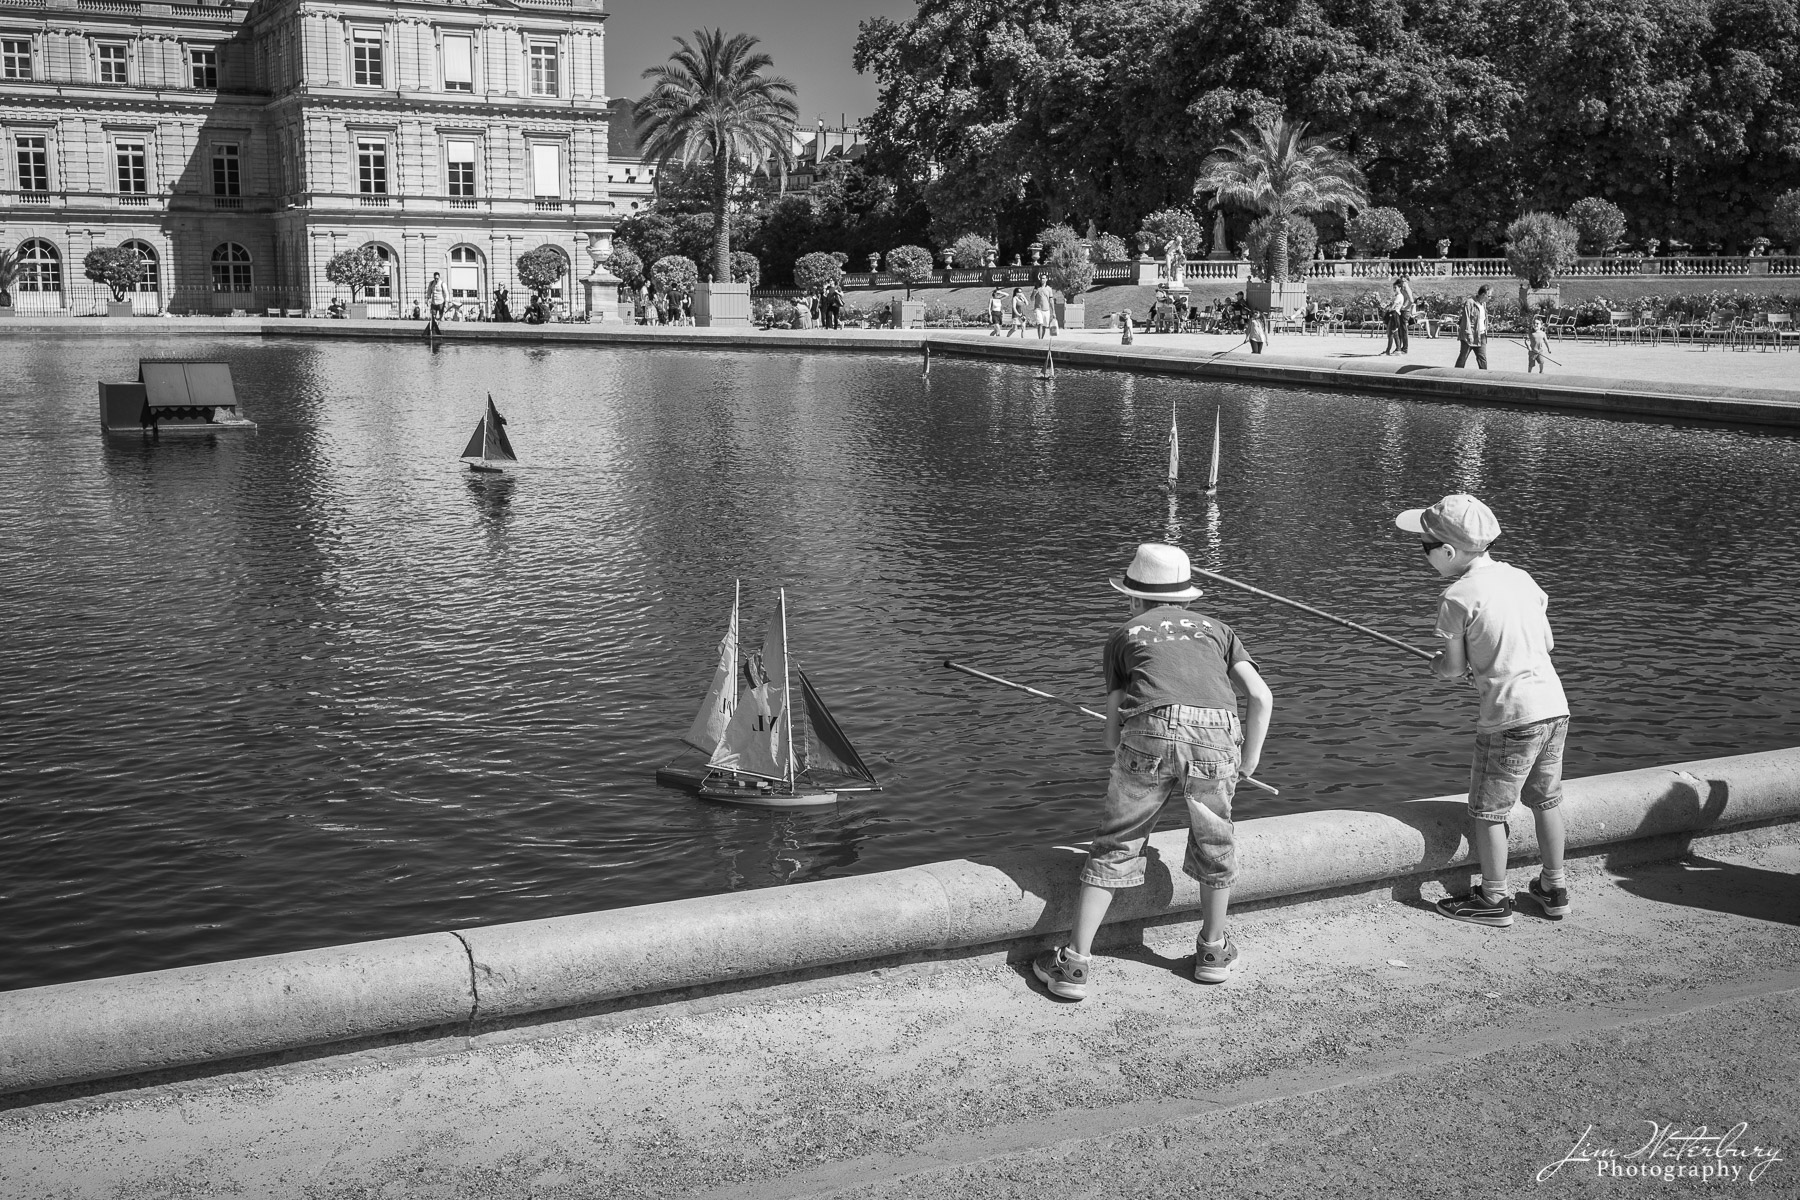 Two boys prepare to race their boats in the pond at the Luxembourg Gardens, Paris. Black & white.